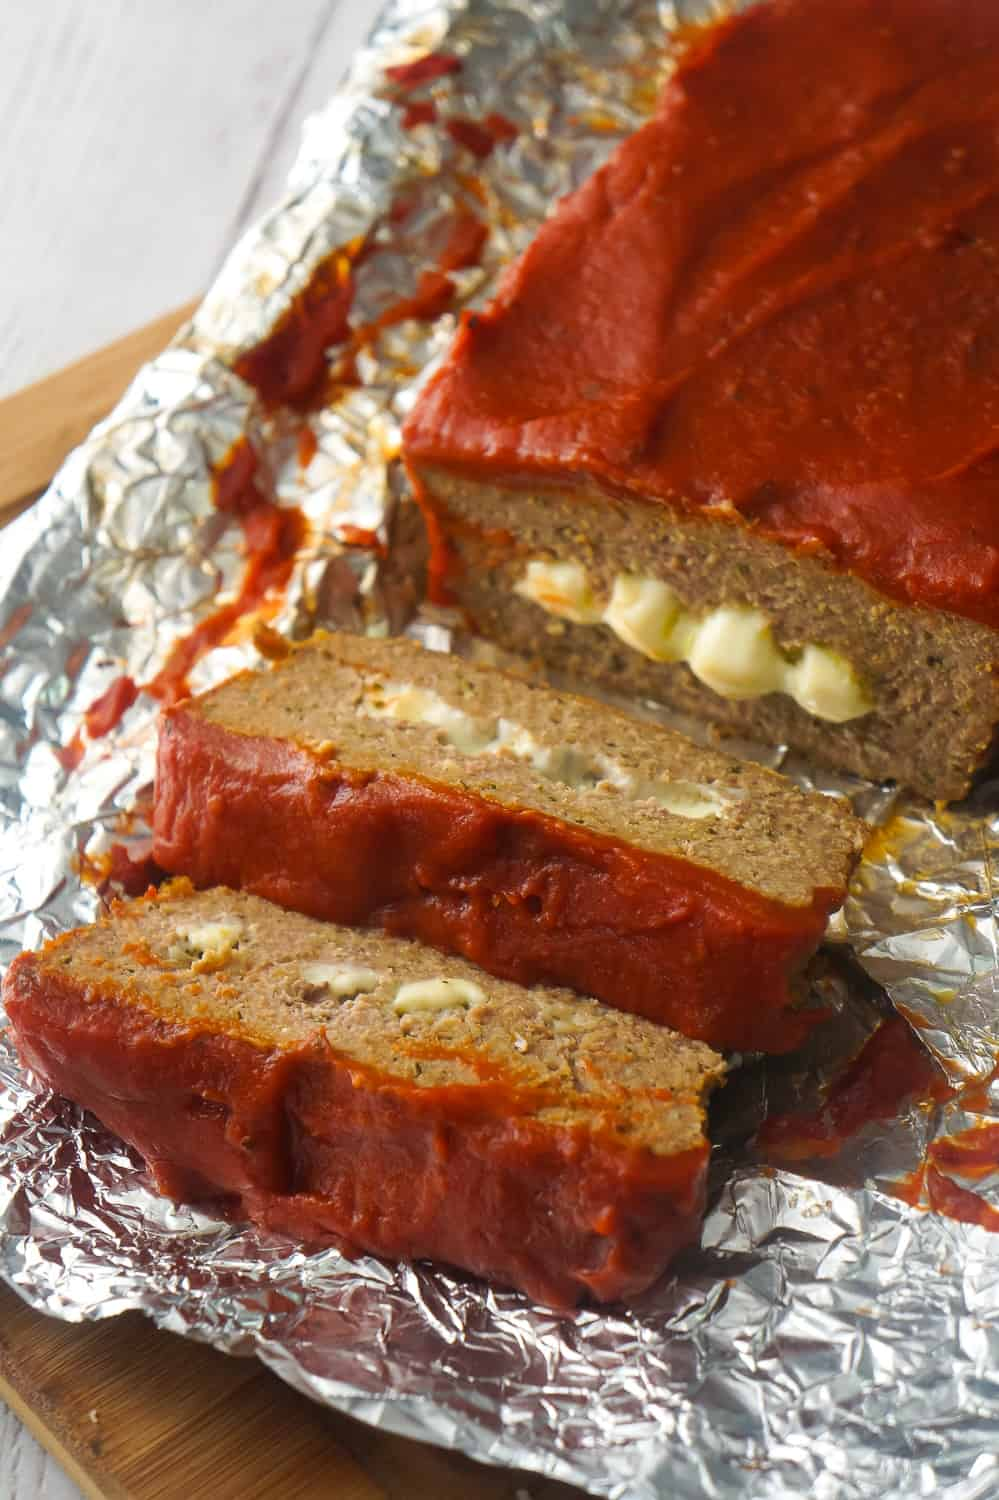 Cheese Stuffed Ground Chicken Meatloaf is an easy dinner recipe loaded with Italian flavours. This chicken meatloaf is made with Italian seasoned bread crumbs, basil pesto, mozzarella cheese and topped with pizza sauce.